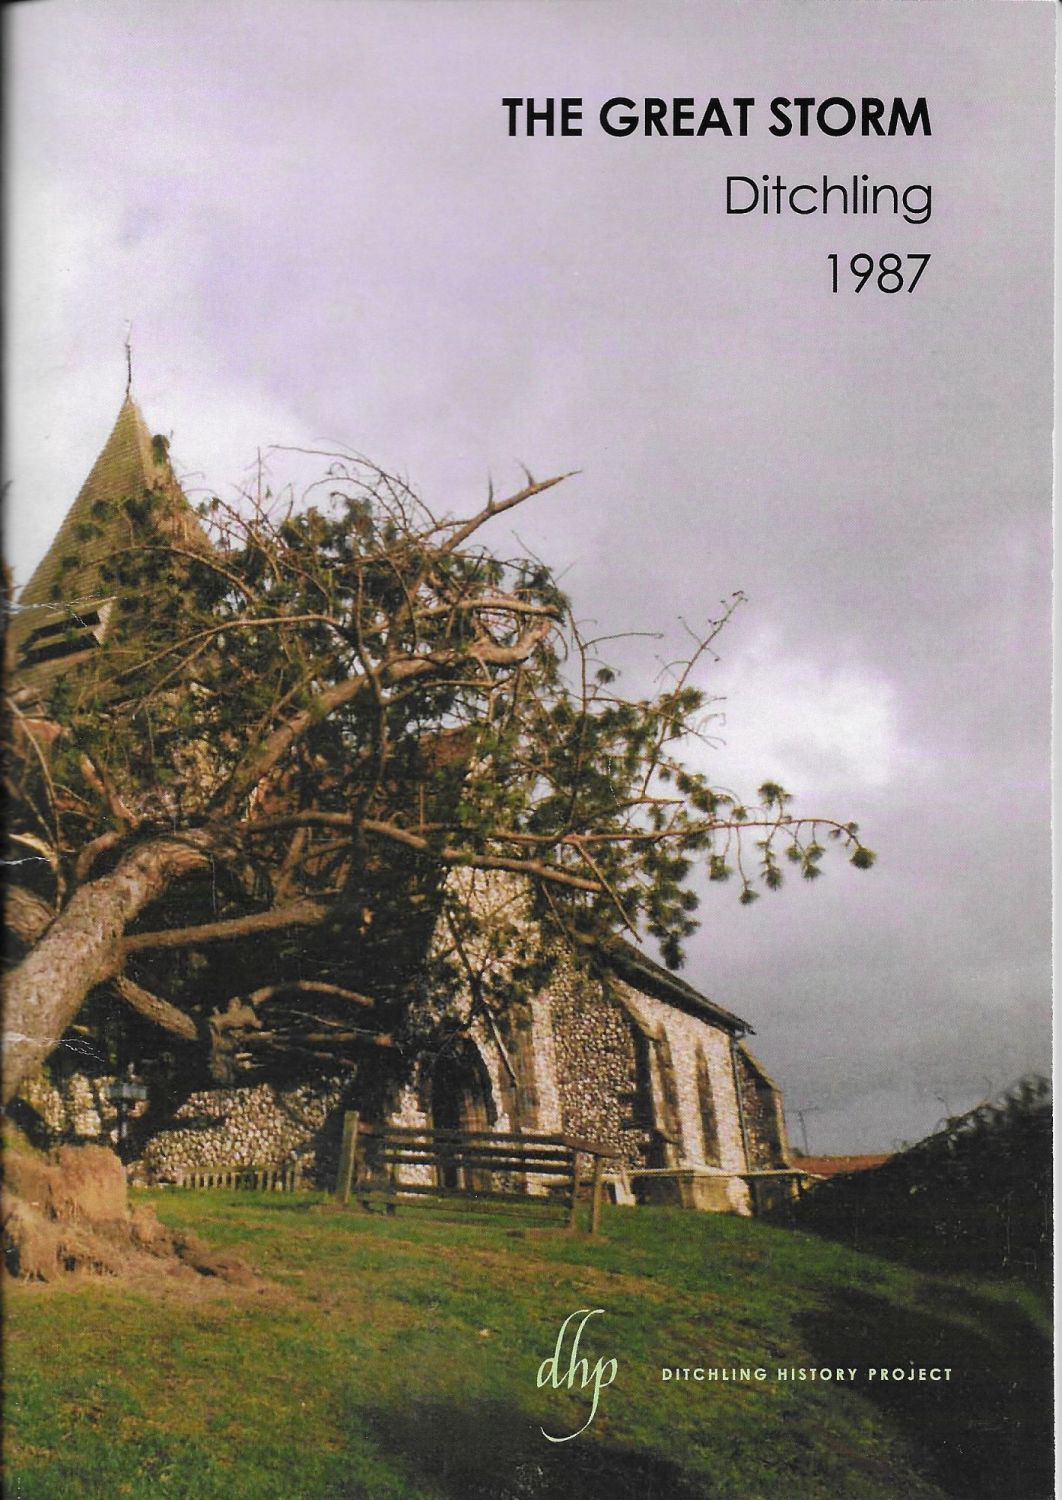 The Great Storm - Ditchling, 1987